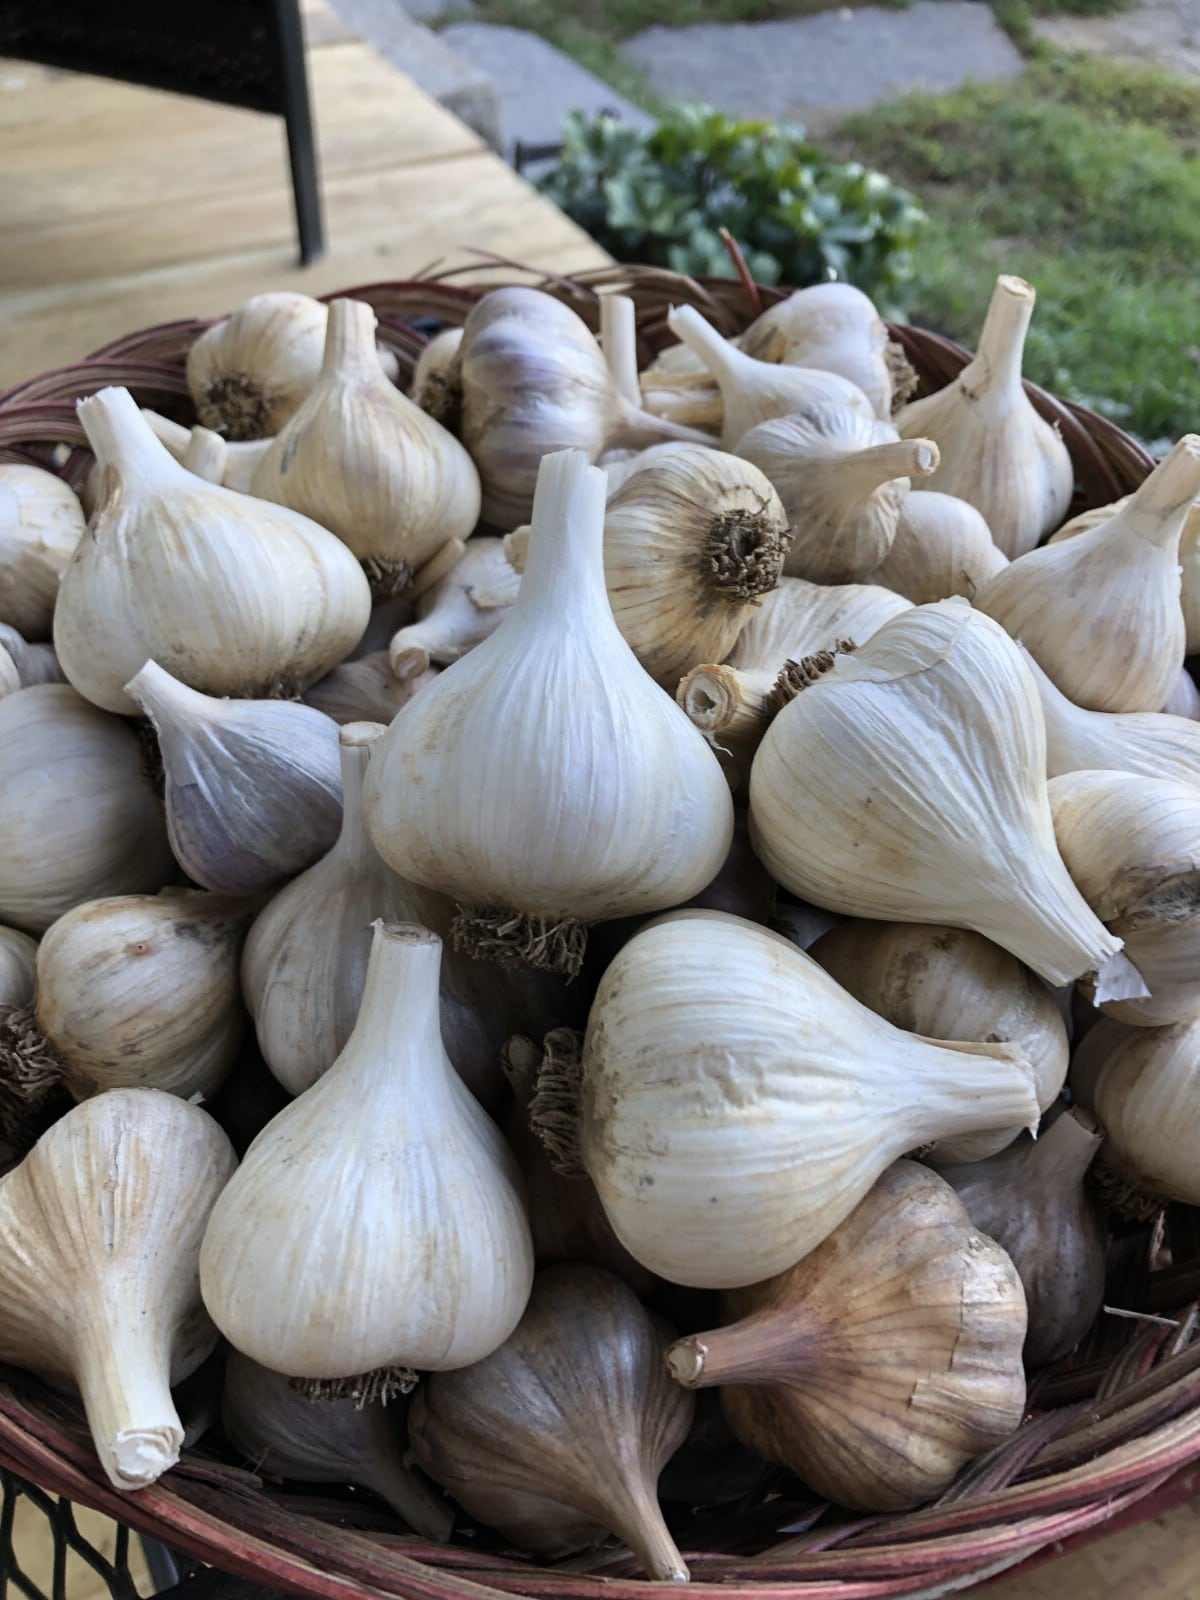 trimmed and stores garlic bulbs